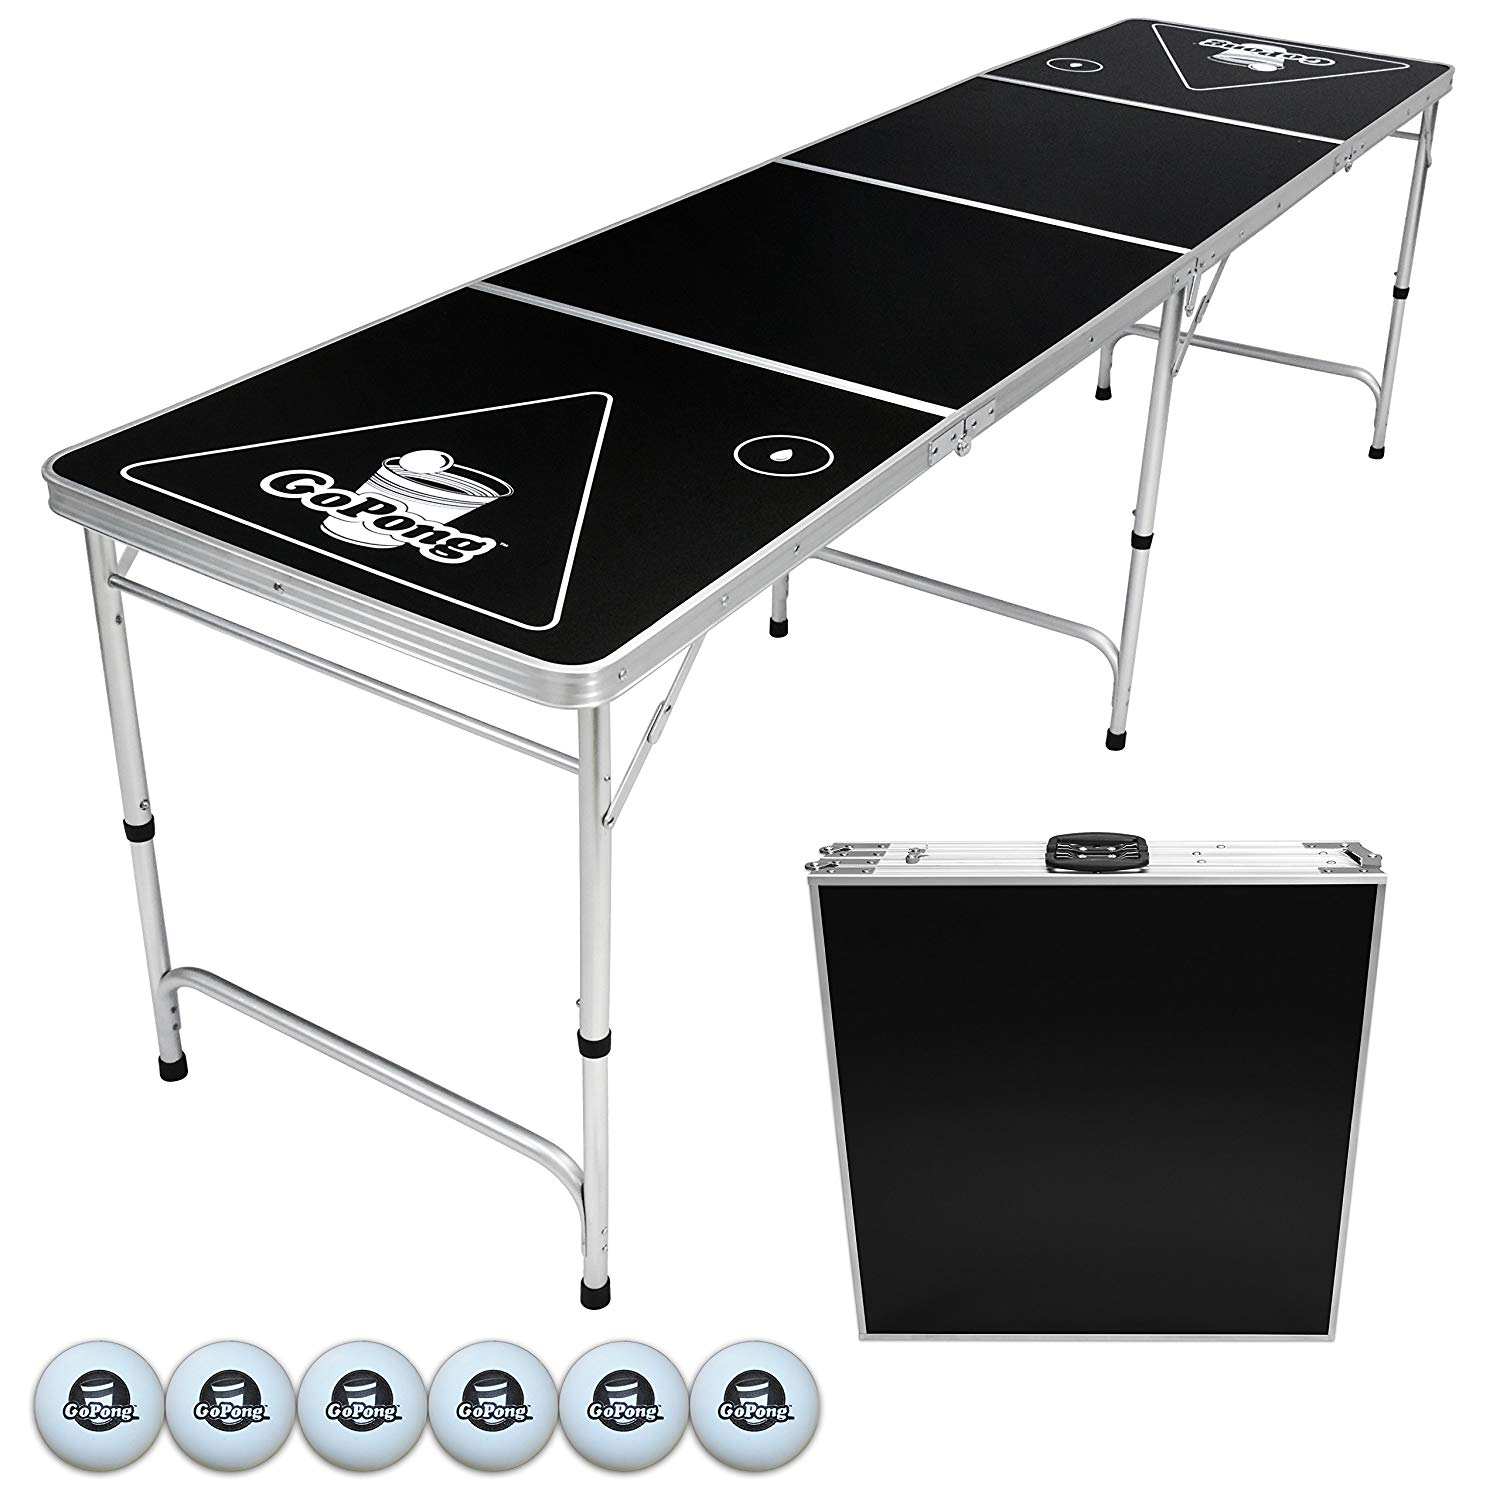 Best Cheap Fold-Up Beer Pong Table - GoPong 8-Foot Portable Beer Pong / Tailgate Table Review